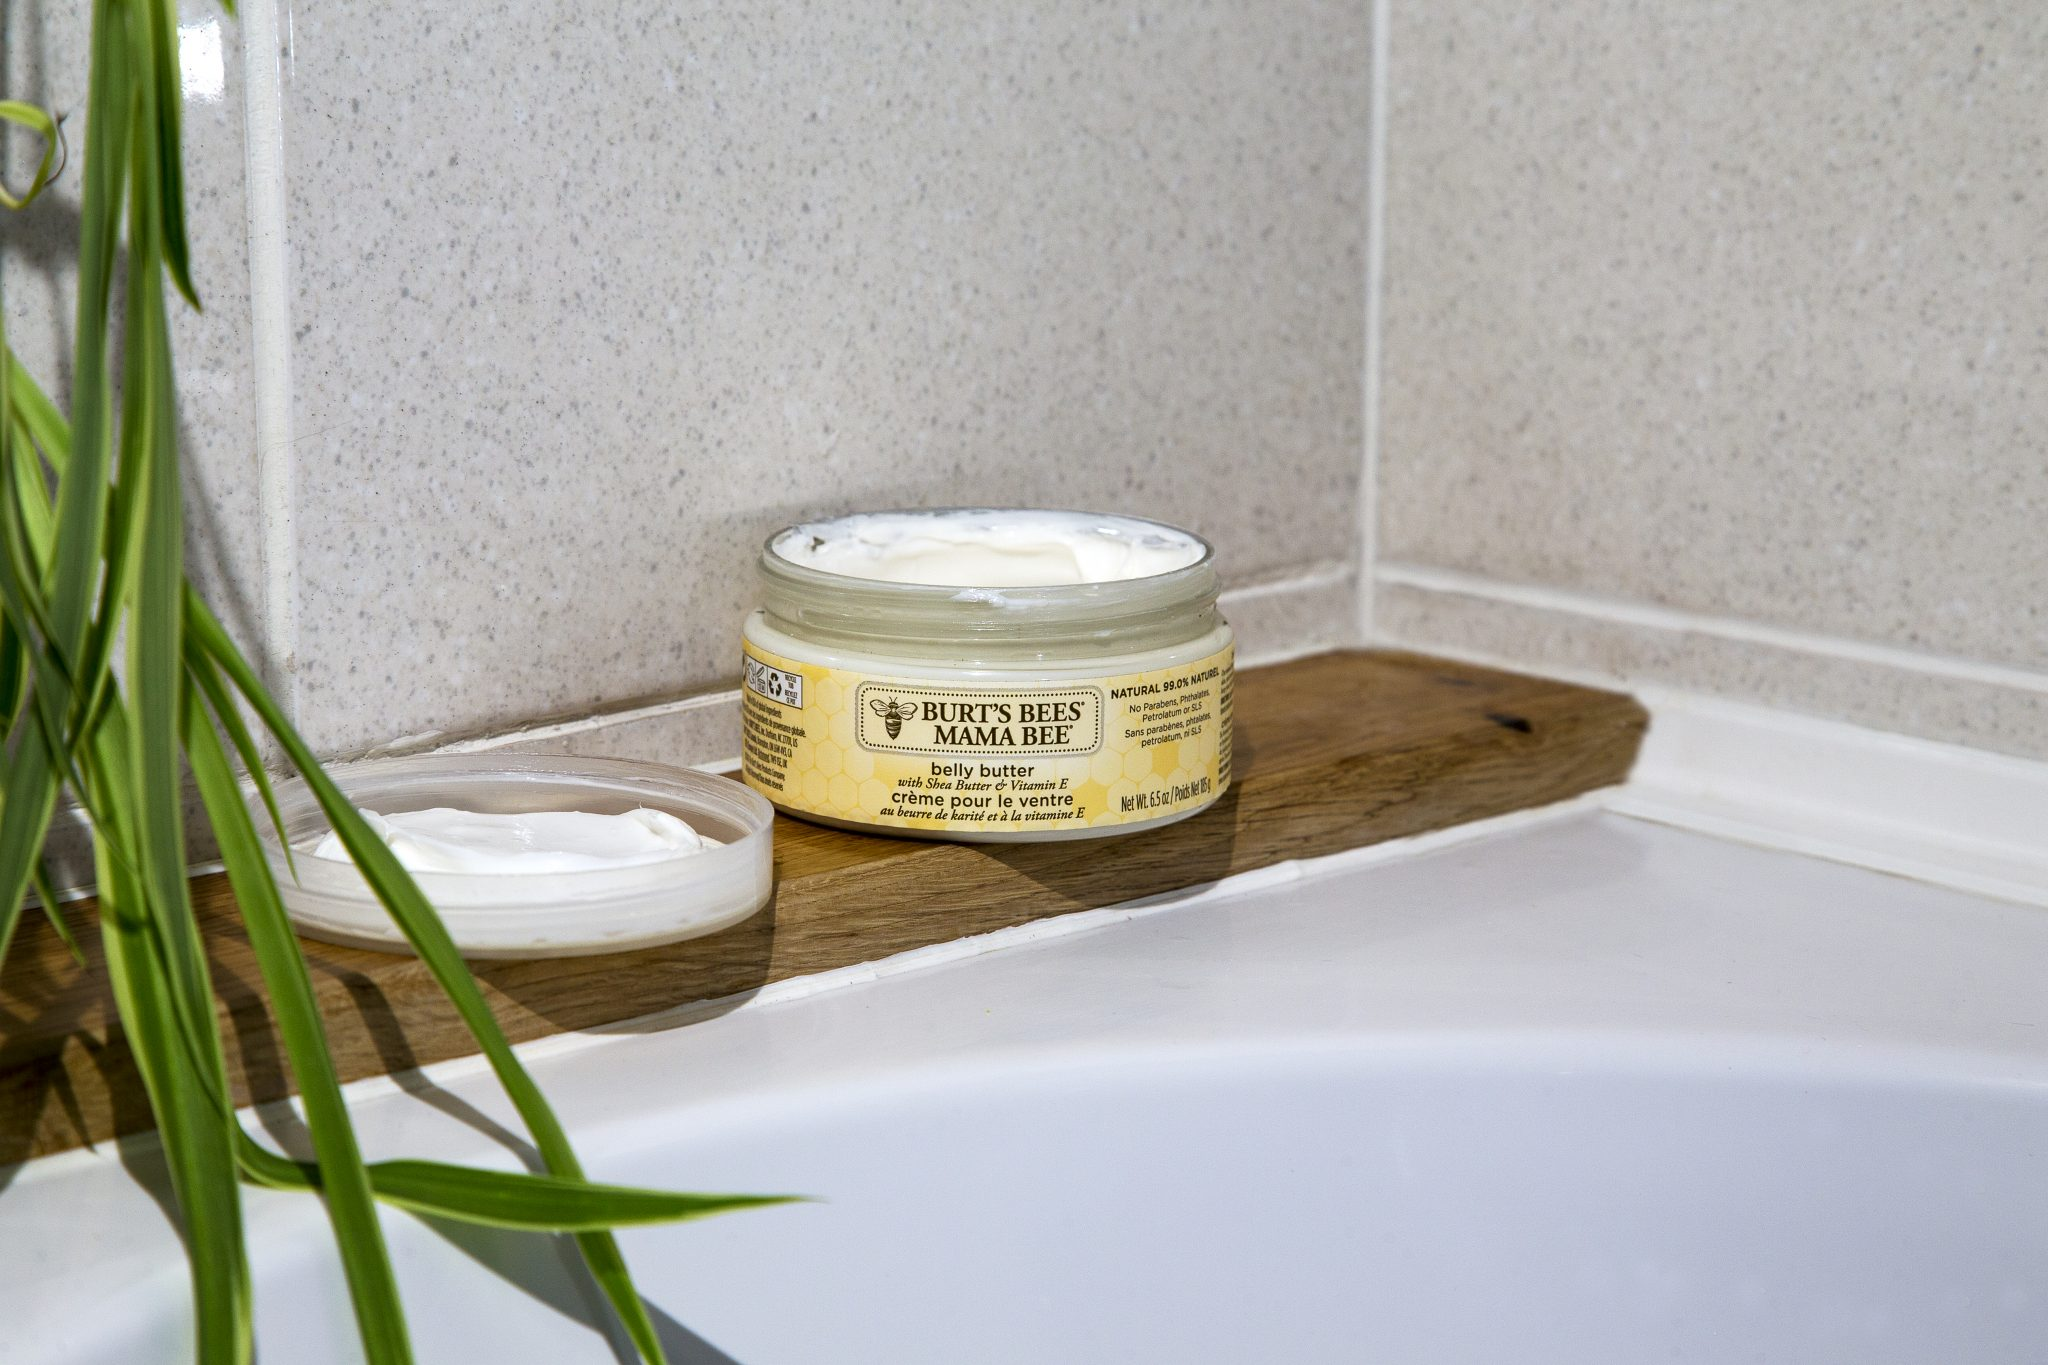 Burt's Bees Mama Bee takes the stress out of chosing that perfect belly butter for a mum to be. For use during and after pregnancy to help keep skin soft and stretchy. Burt's Bees Mama Bee makes the perfect Valentine's Day gift for any pregnant mums. See full Valentine's Day gift guide for pregnant women at https://lukeosaurusandme.co.uk